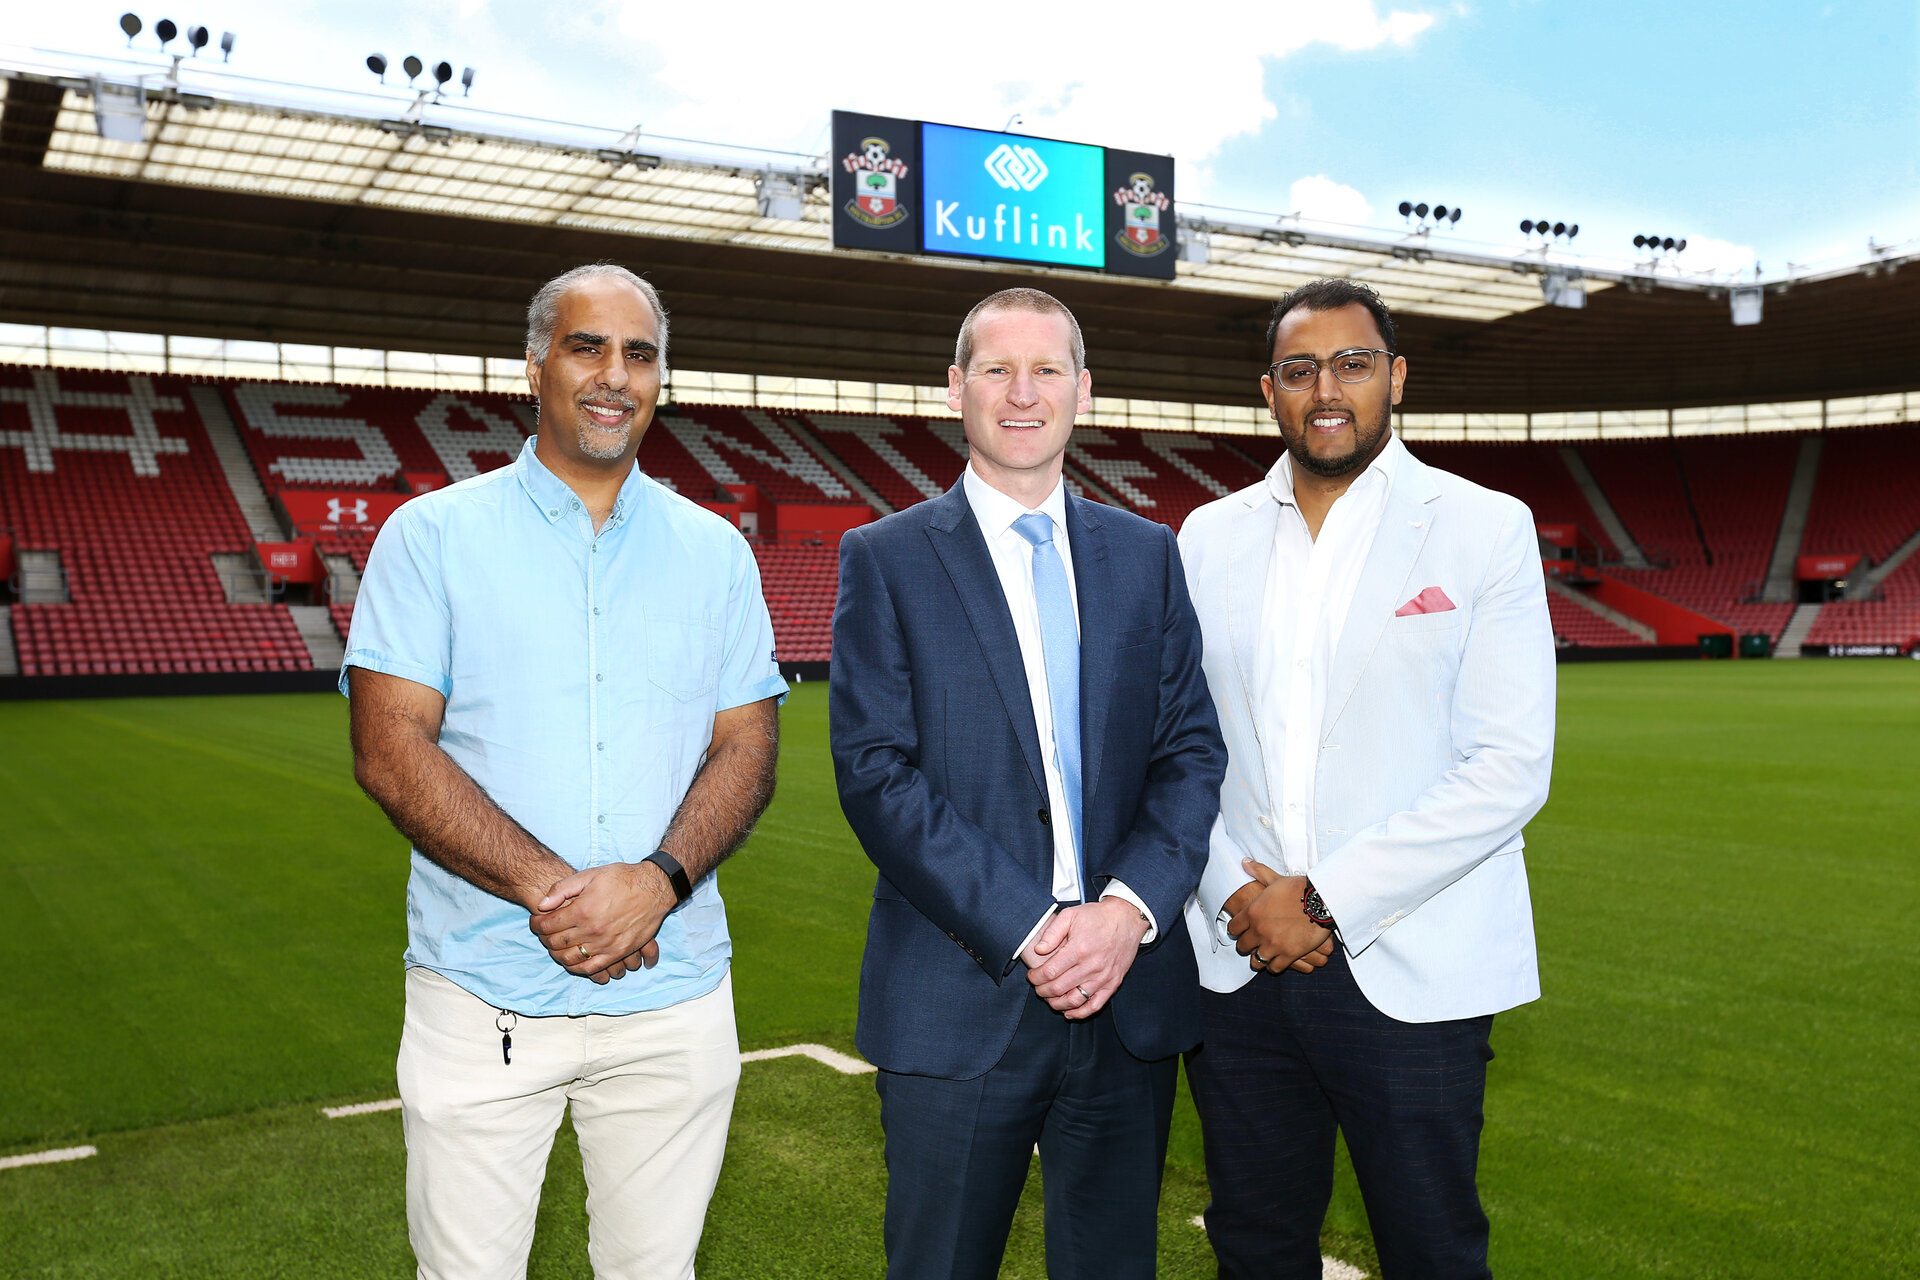 SOUTHAMPTON, ENGLAND - JULY 02:  Managing director Toby Steele greets Kuflinks partnership at St Mary's Stadium pictured on the July 02, 2019 in Southampton, England. (Photo by James Bridle - Southampton FC/Southampton FC via Getty Images)